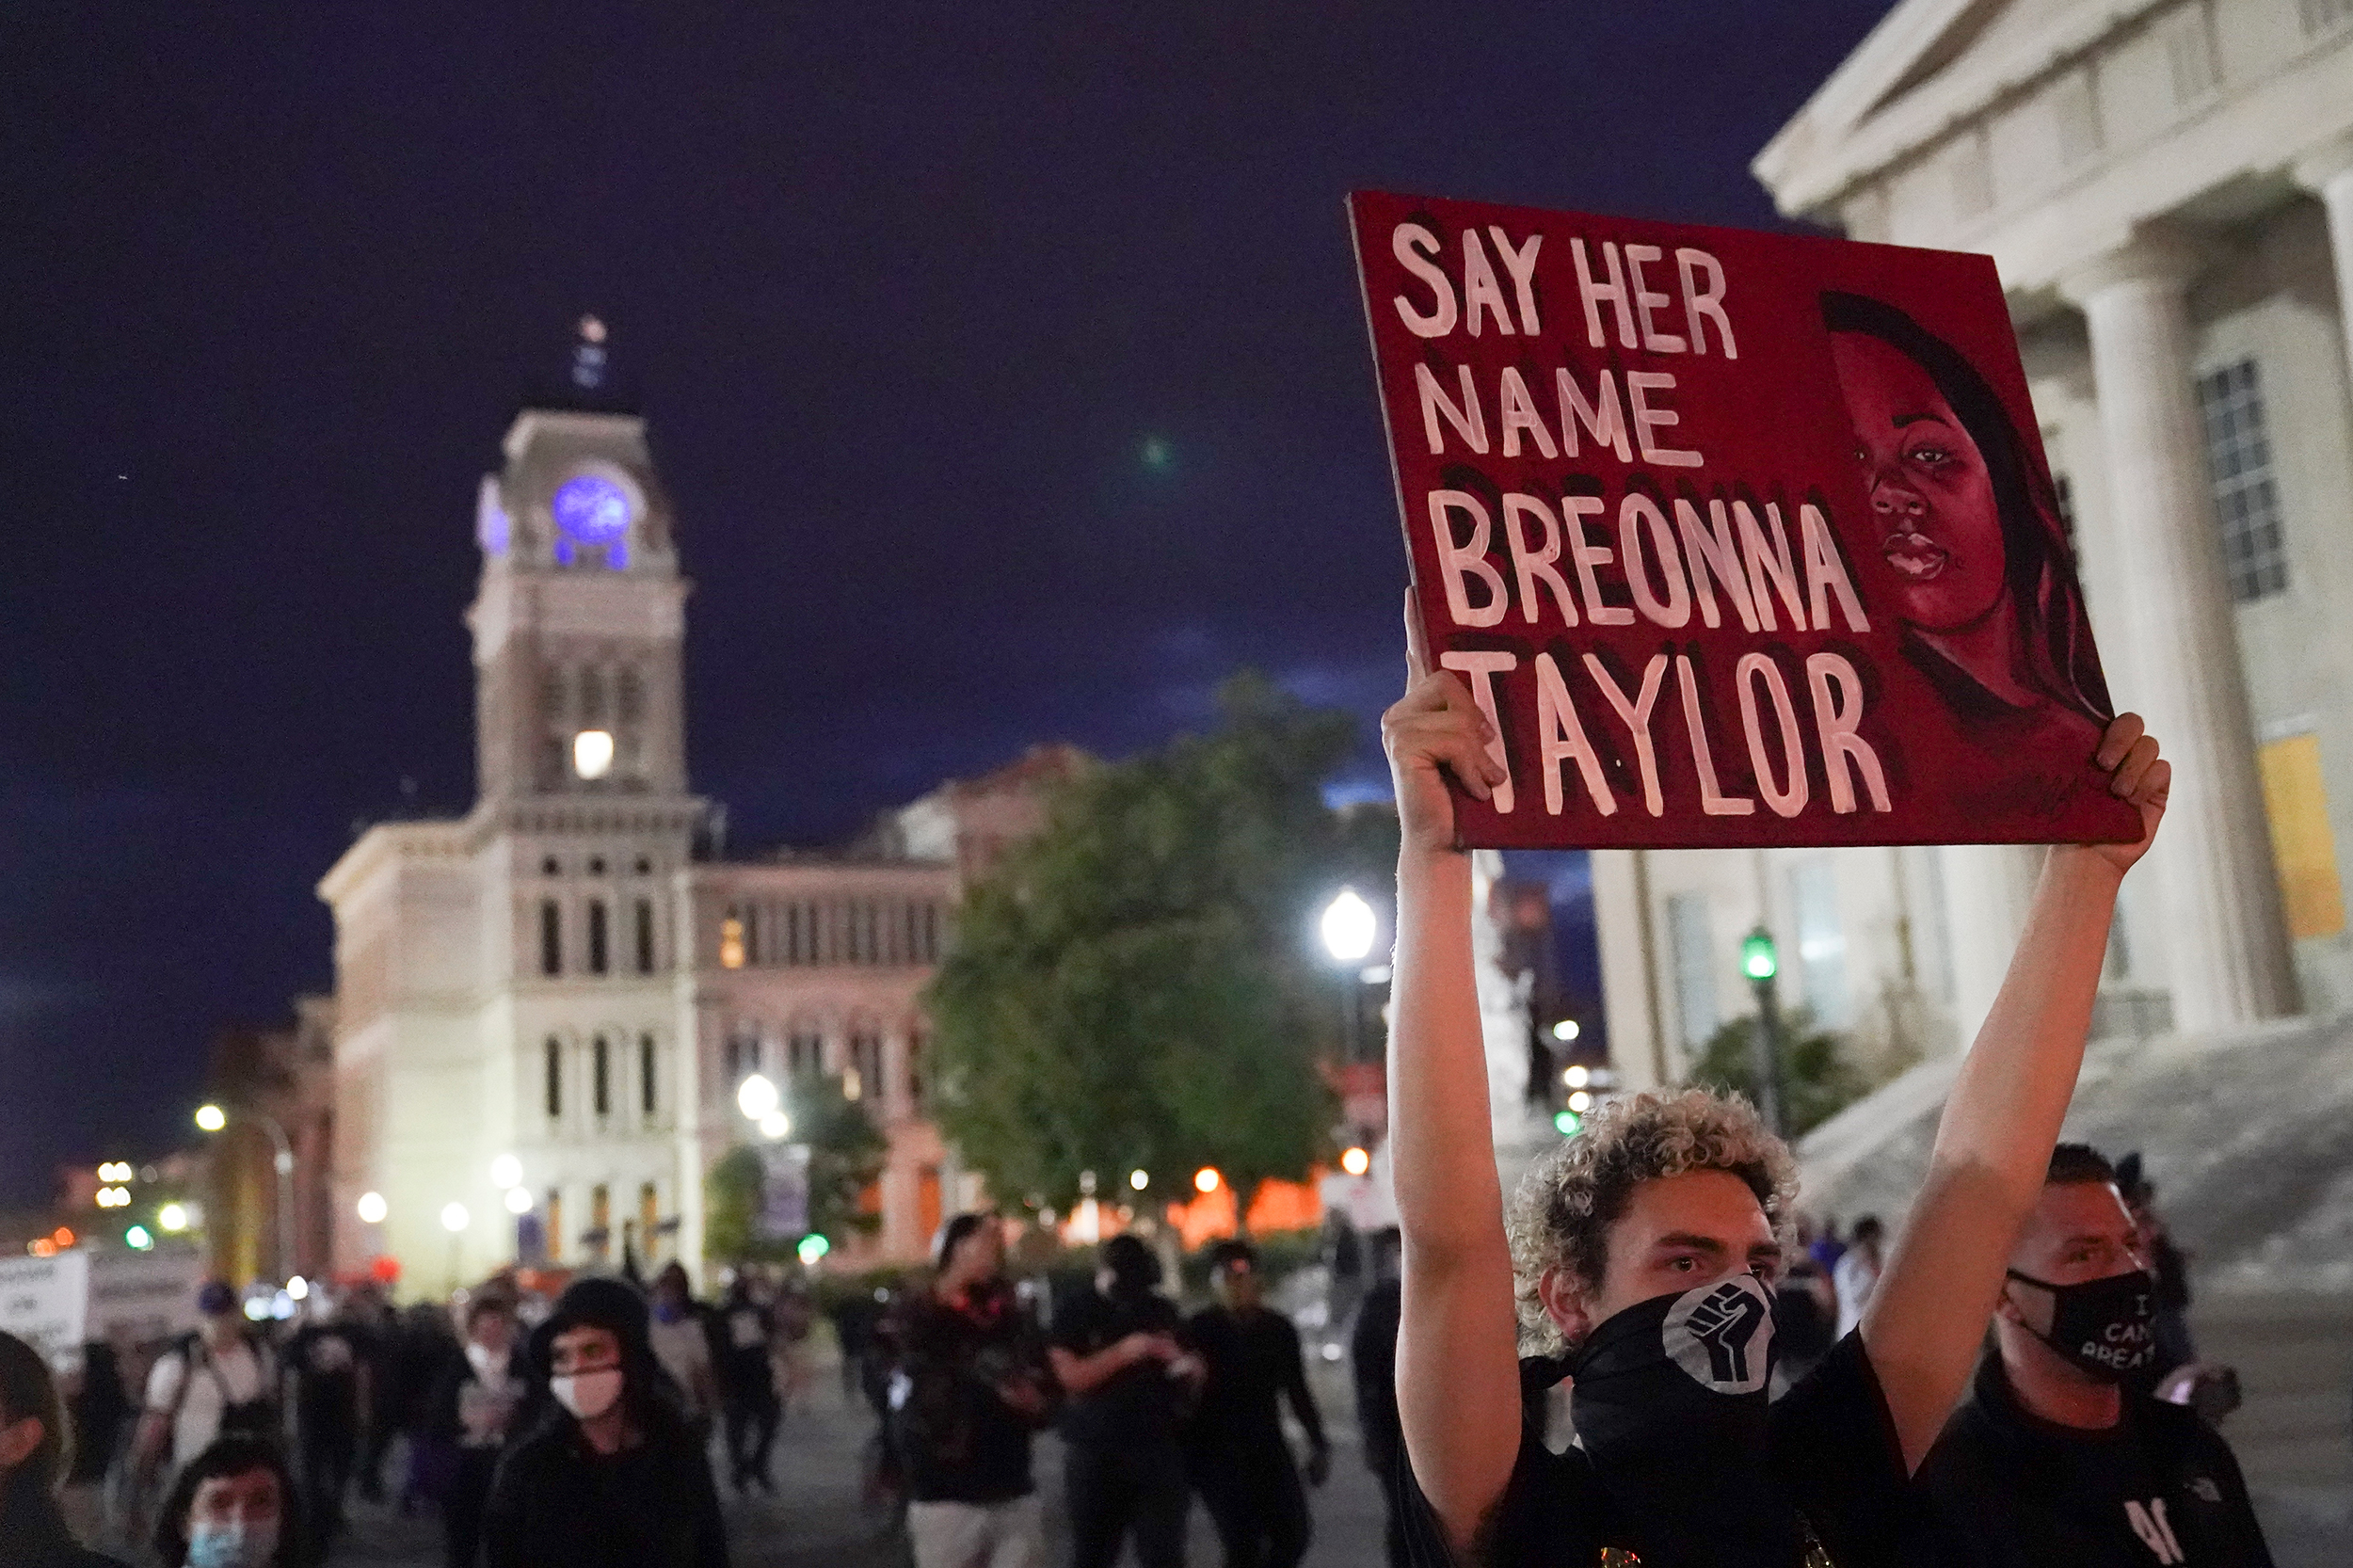 Louisville police arrest at least 25 people during fourth night of protests over Breonna Taylor case